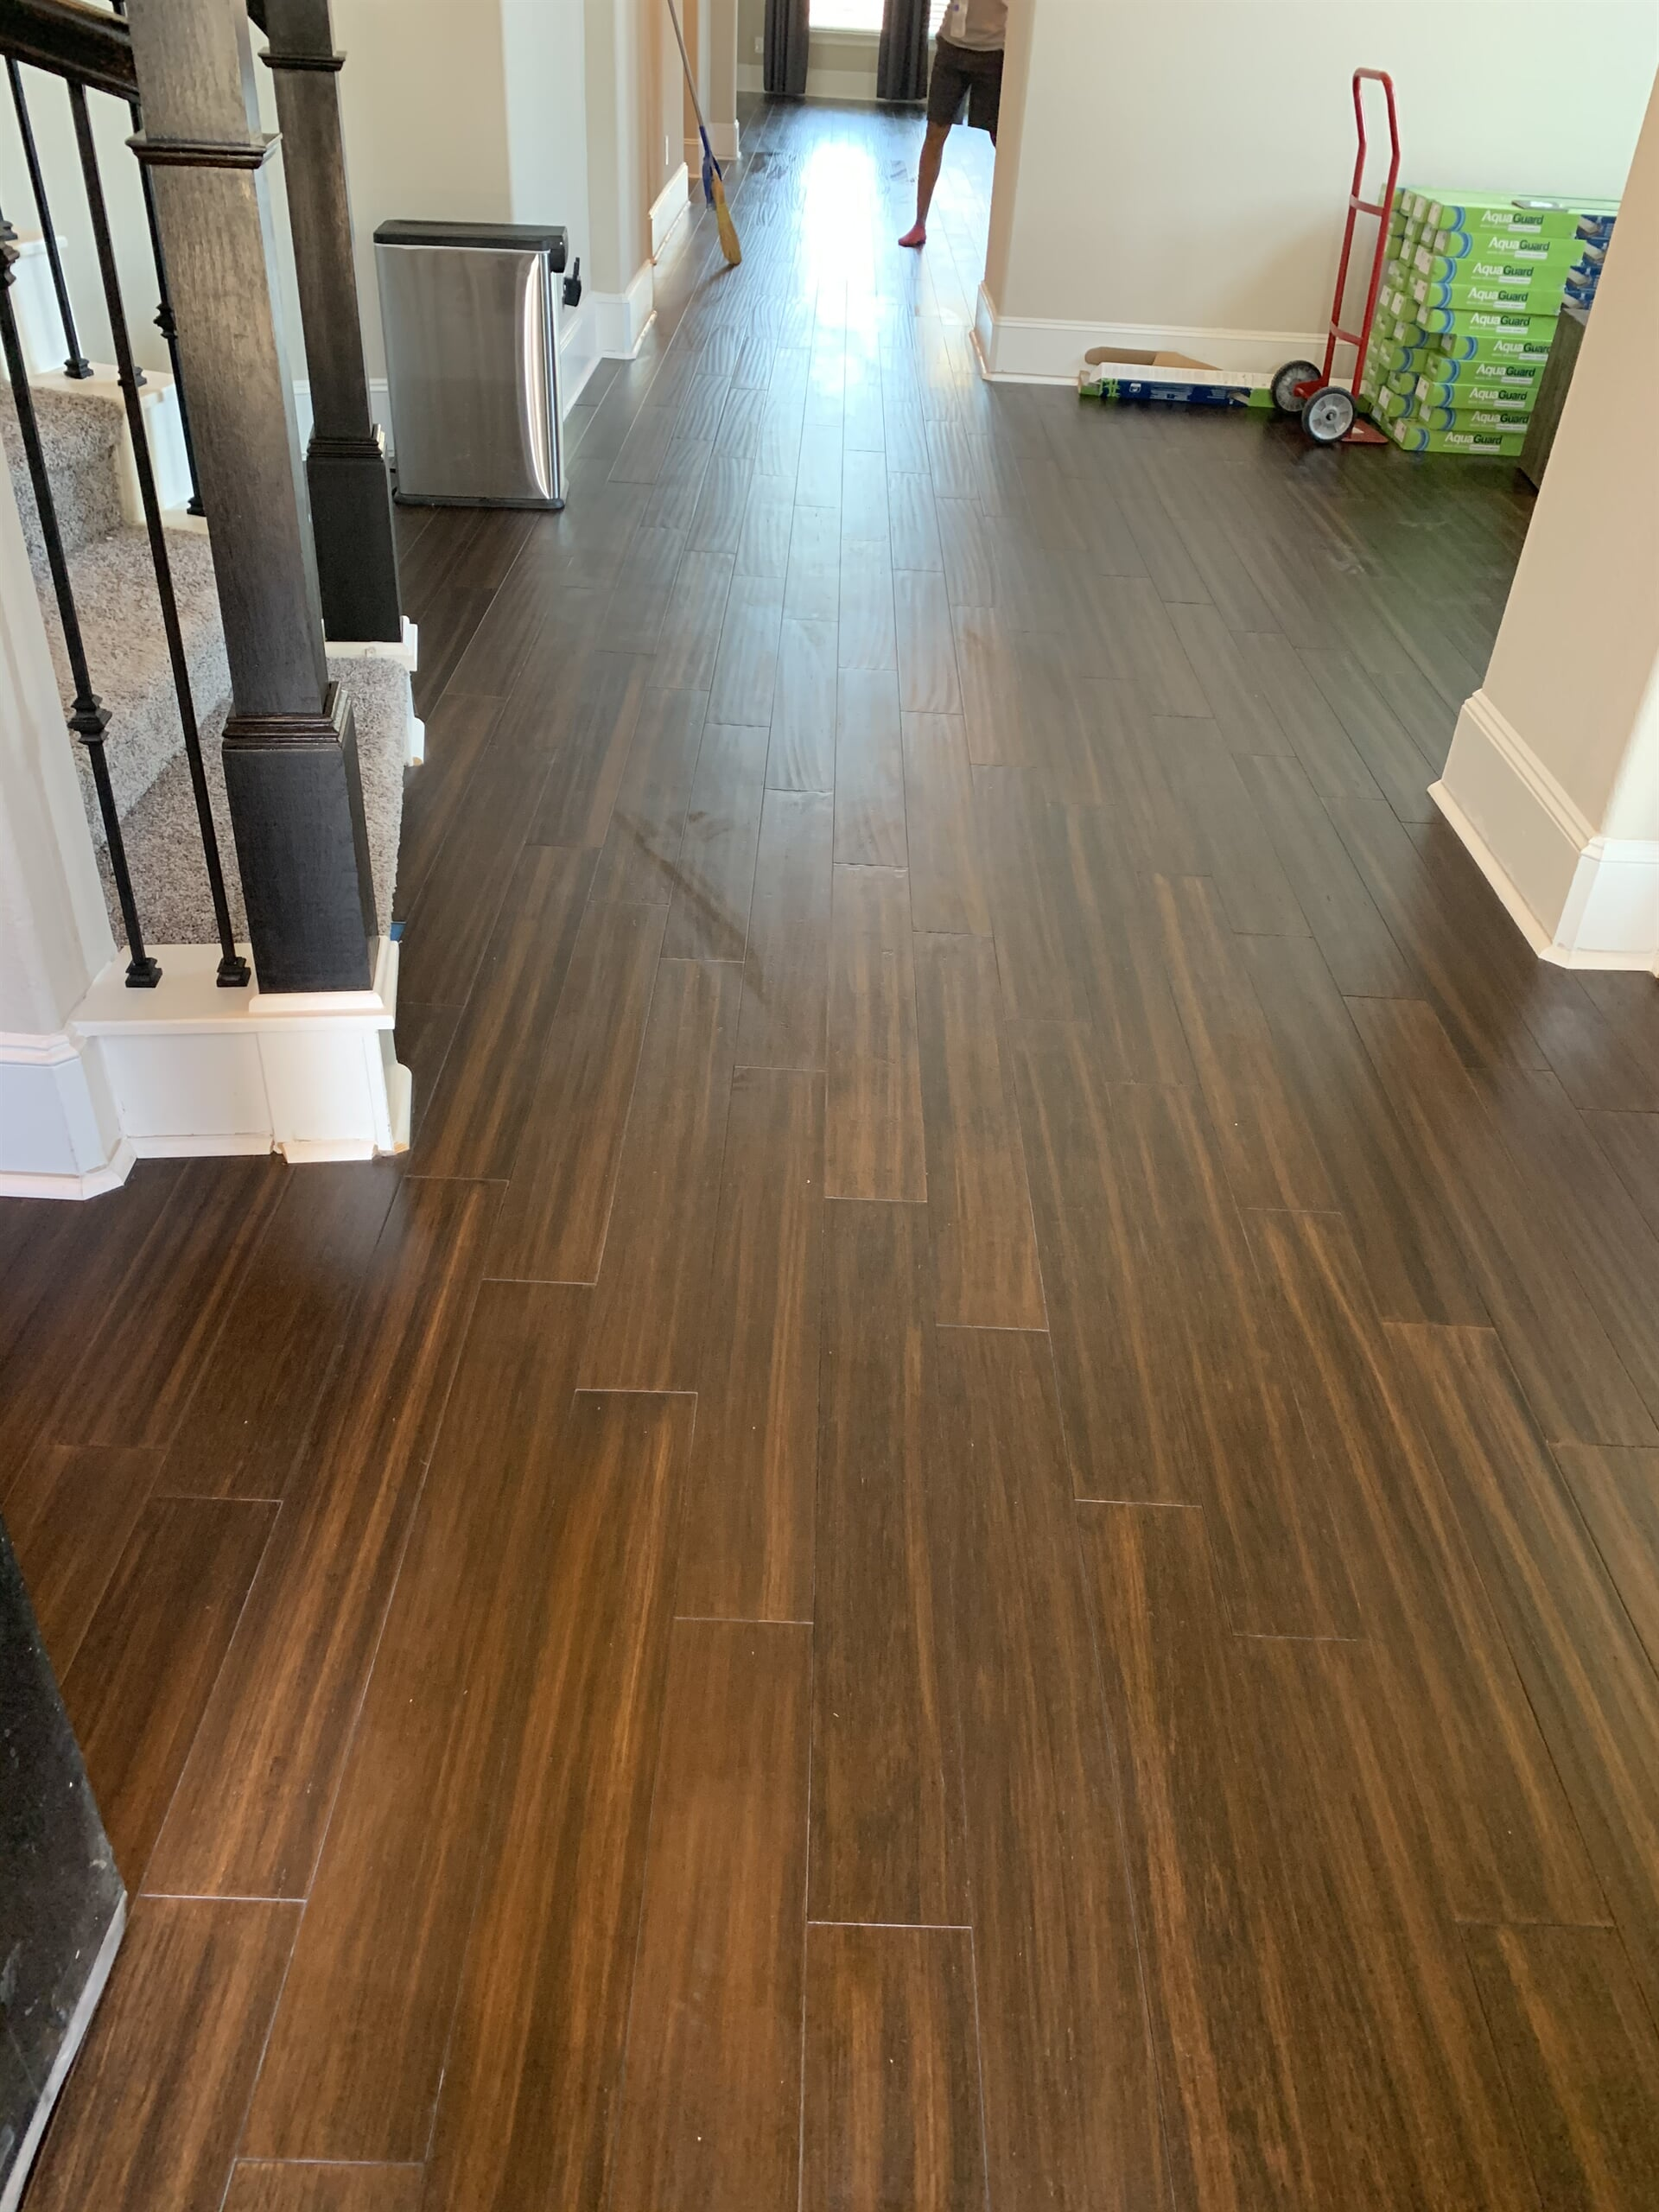 Bamboo flooring from Houston Floor Installation Services in Humble, TX